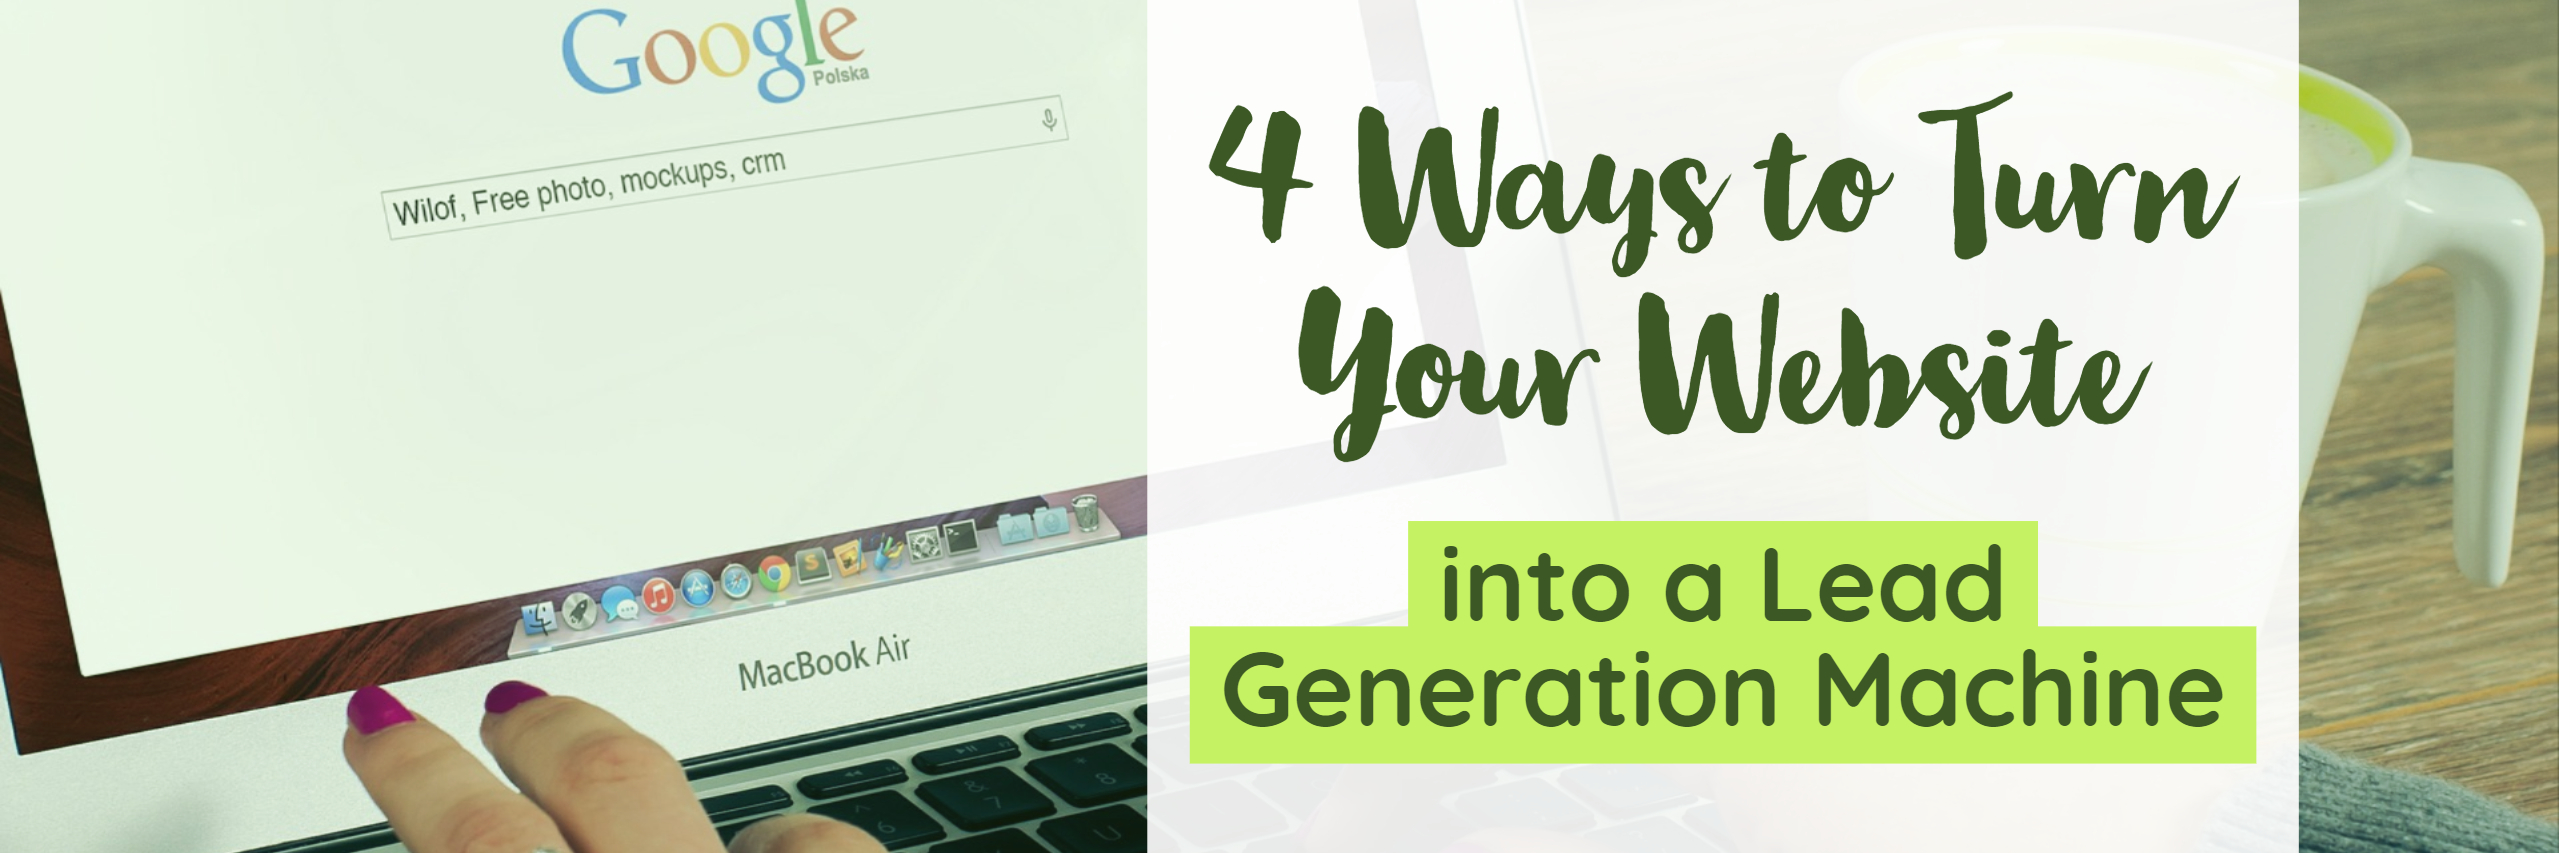 4 ways to turn your website into a lead generation machine